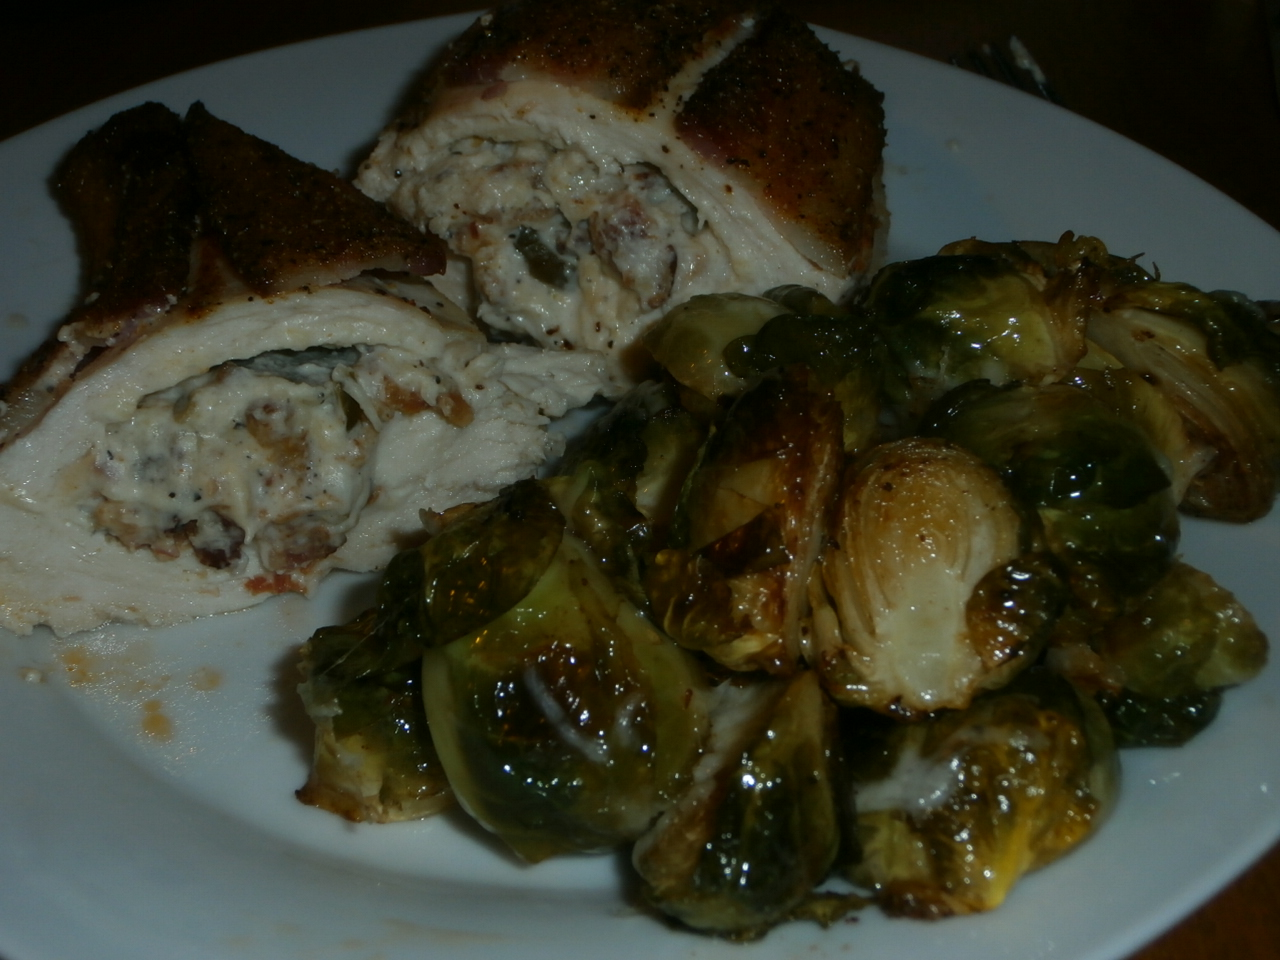 Spicy Cheese & Bacon Stuffed Chicken! #LCHF #YUM